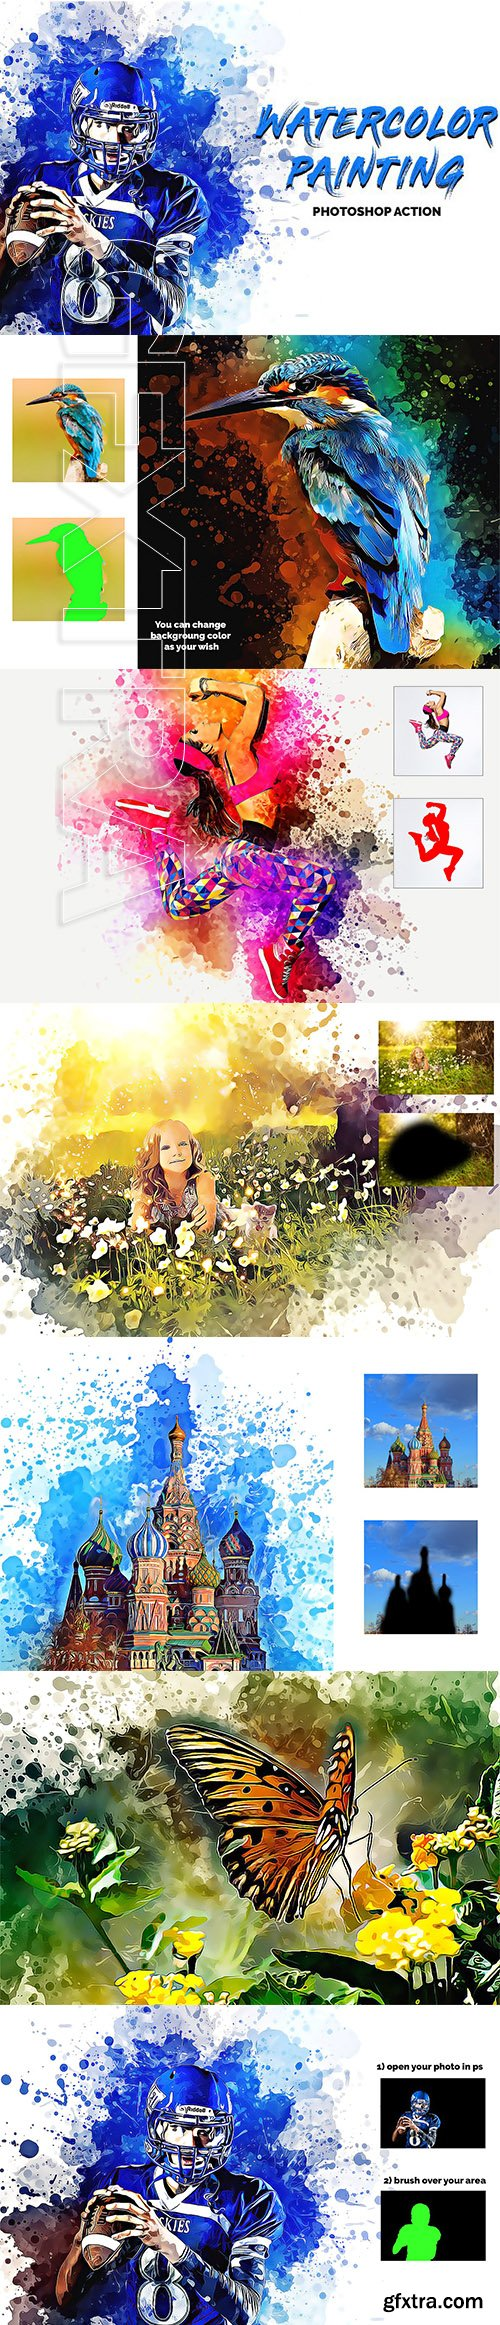 CreativeMarket - Watercolor Painting Photoshop Action 3365167